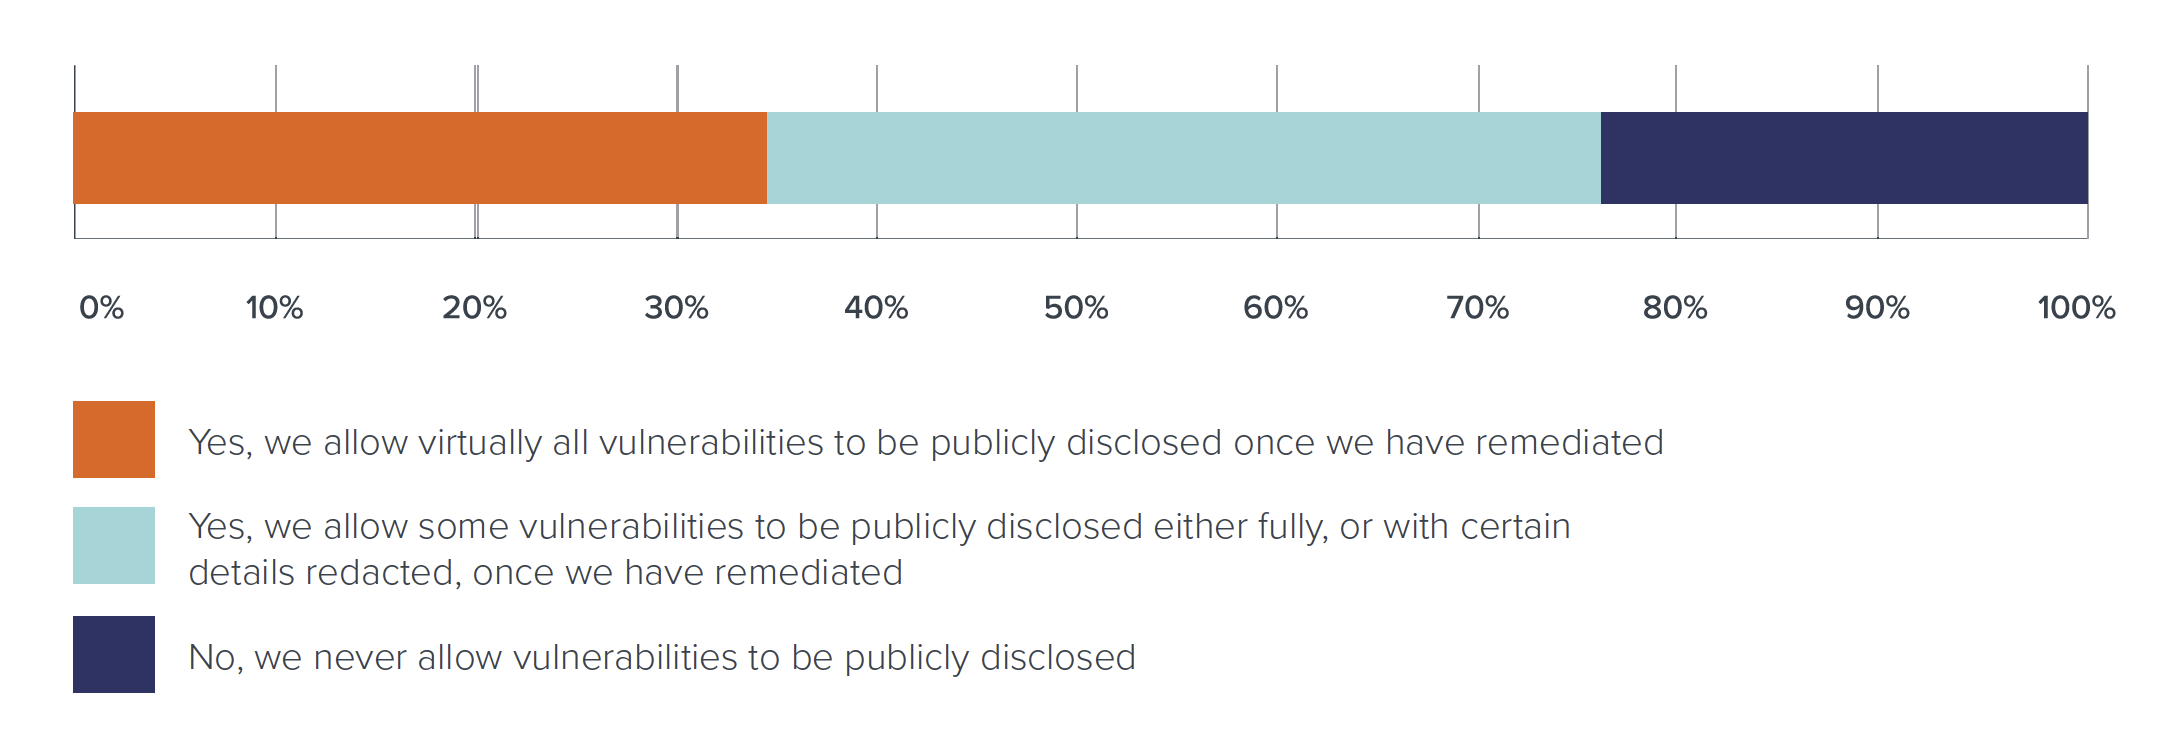 For organizations with a VDP: Does your organization allow coordinated or discretionary disclosure, wherein the finder of a vulnerability is permitted to publicly disclose details of the finding after it has been remediated?